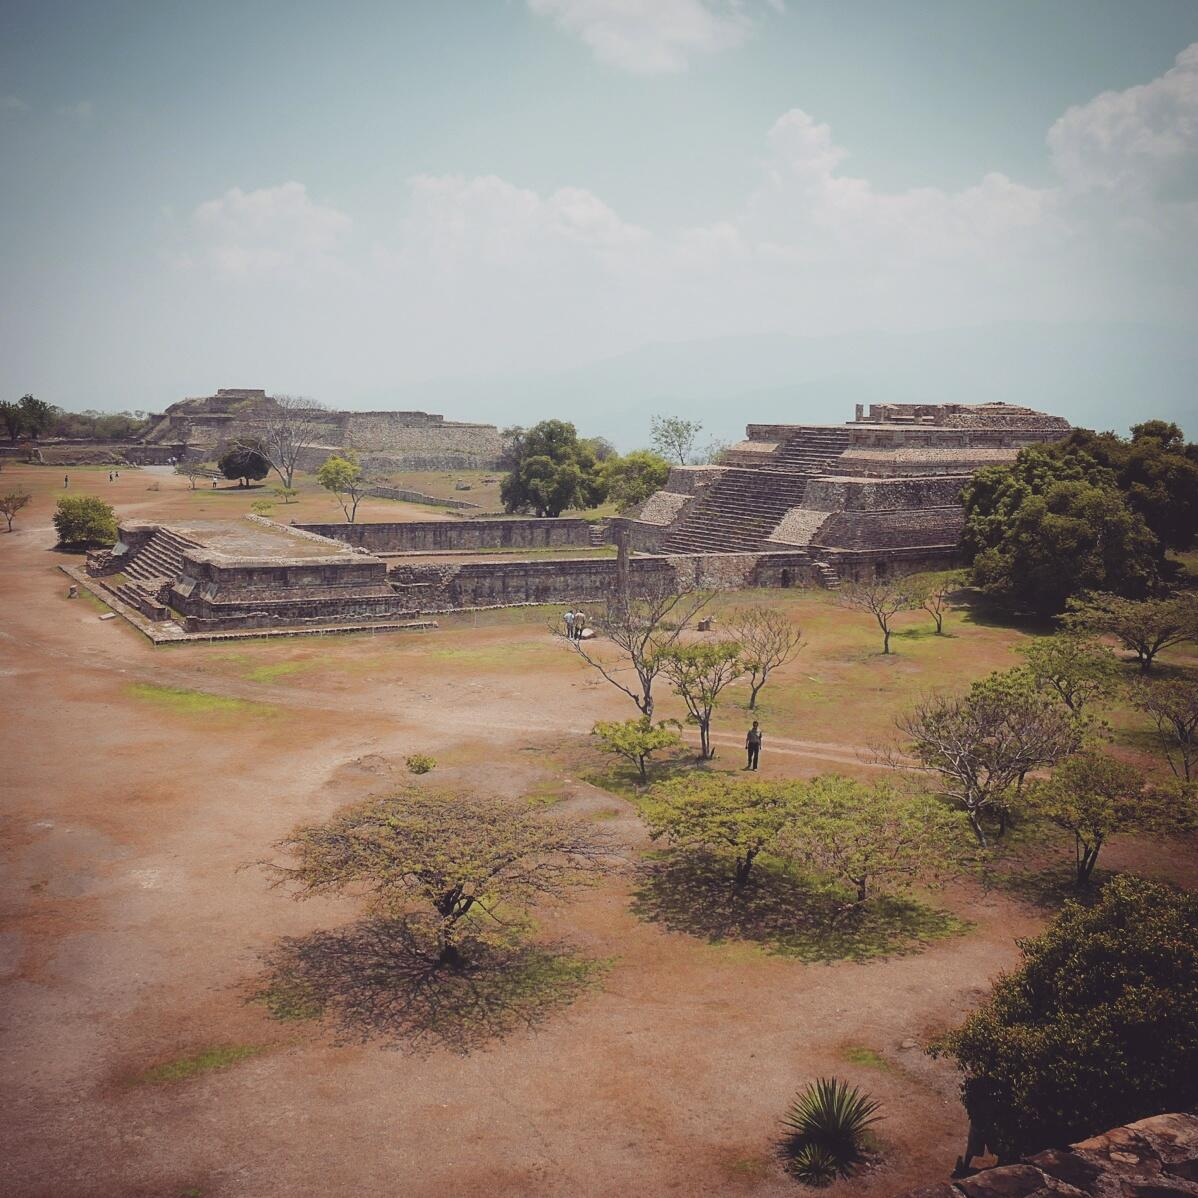 The ruins at Monte Alban are spectacular, historic, and a good birding spot. Noah Strycker